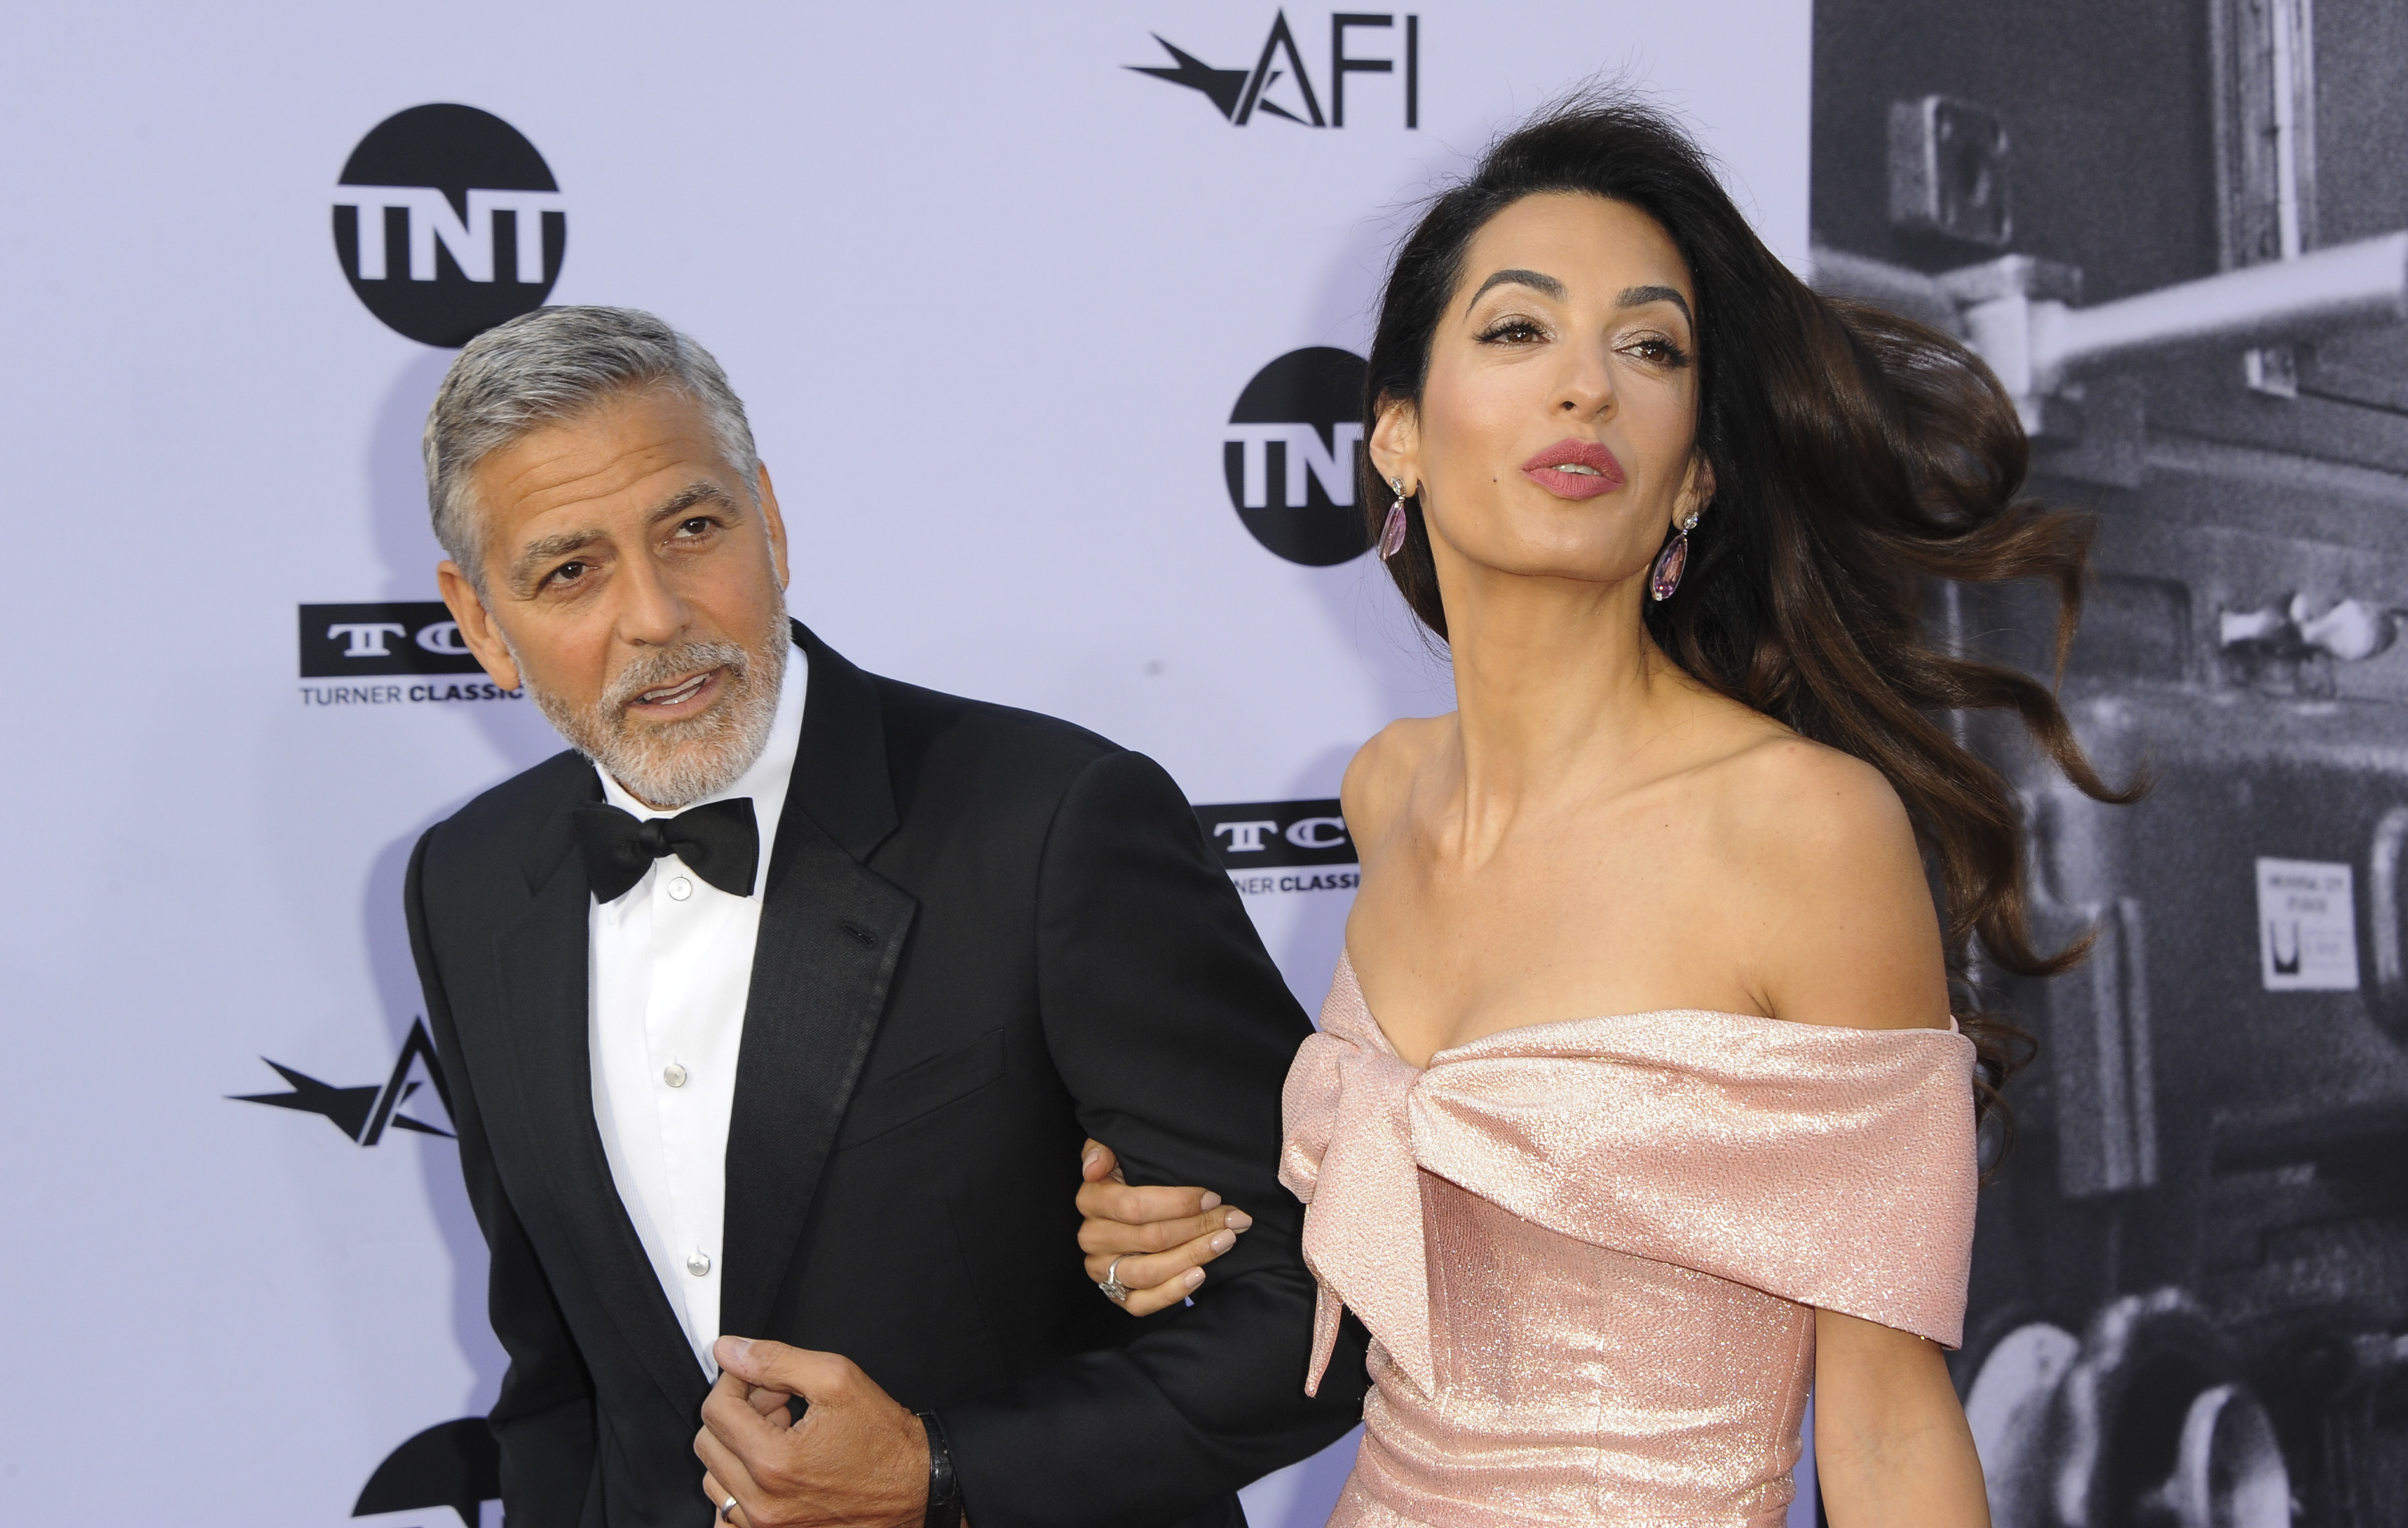 George Clooney and Amal Clooney at the 46th AFI Life Achievement Awards in Los Angeles, California on June 8, 2018. (Apega/WENN.com)